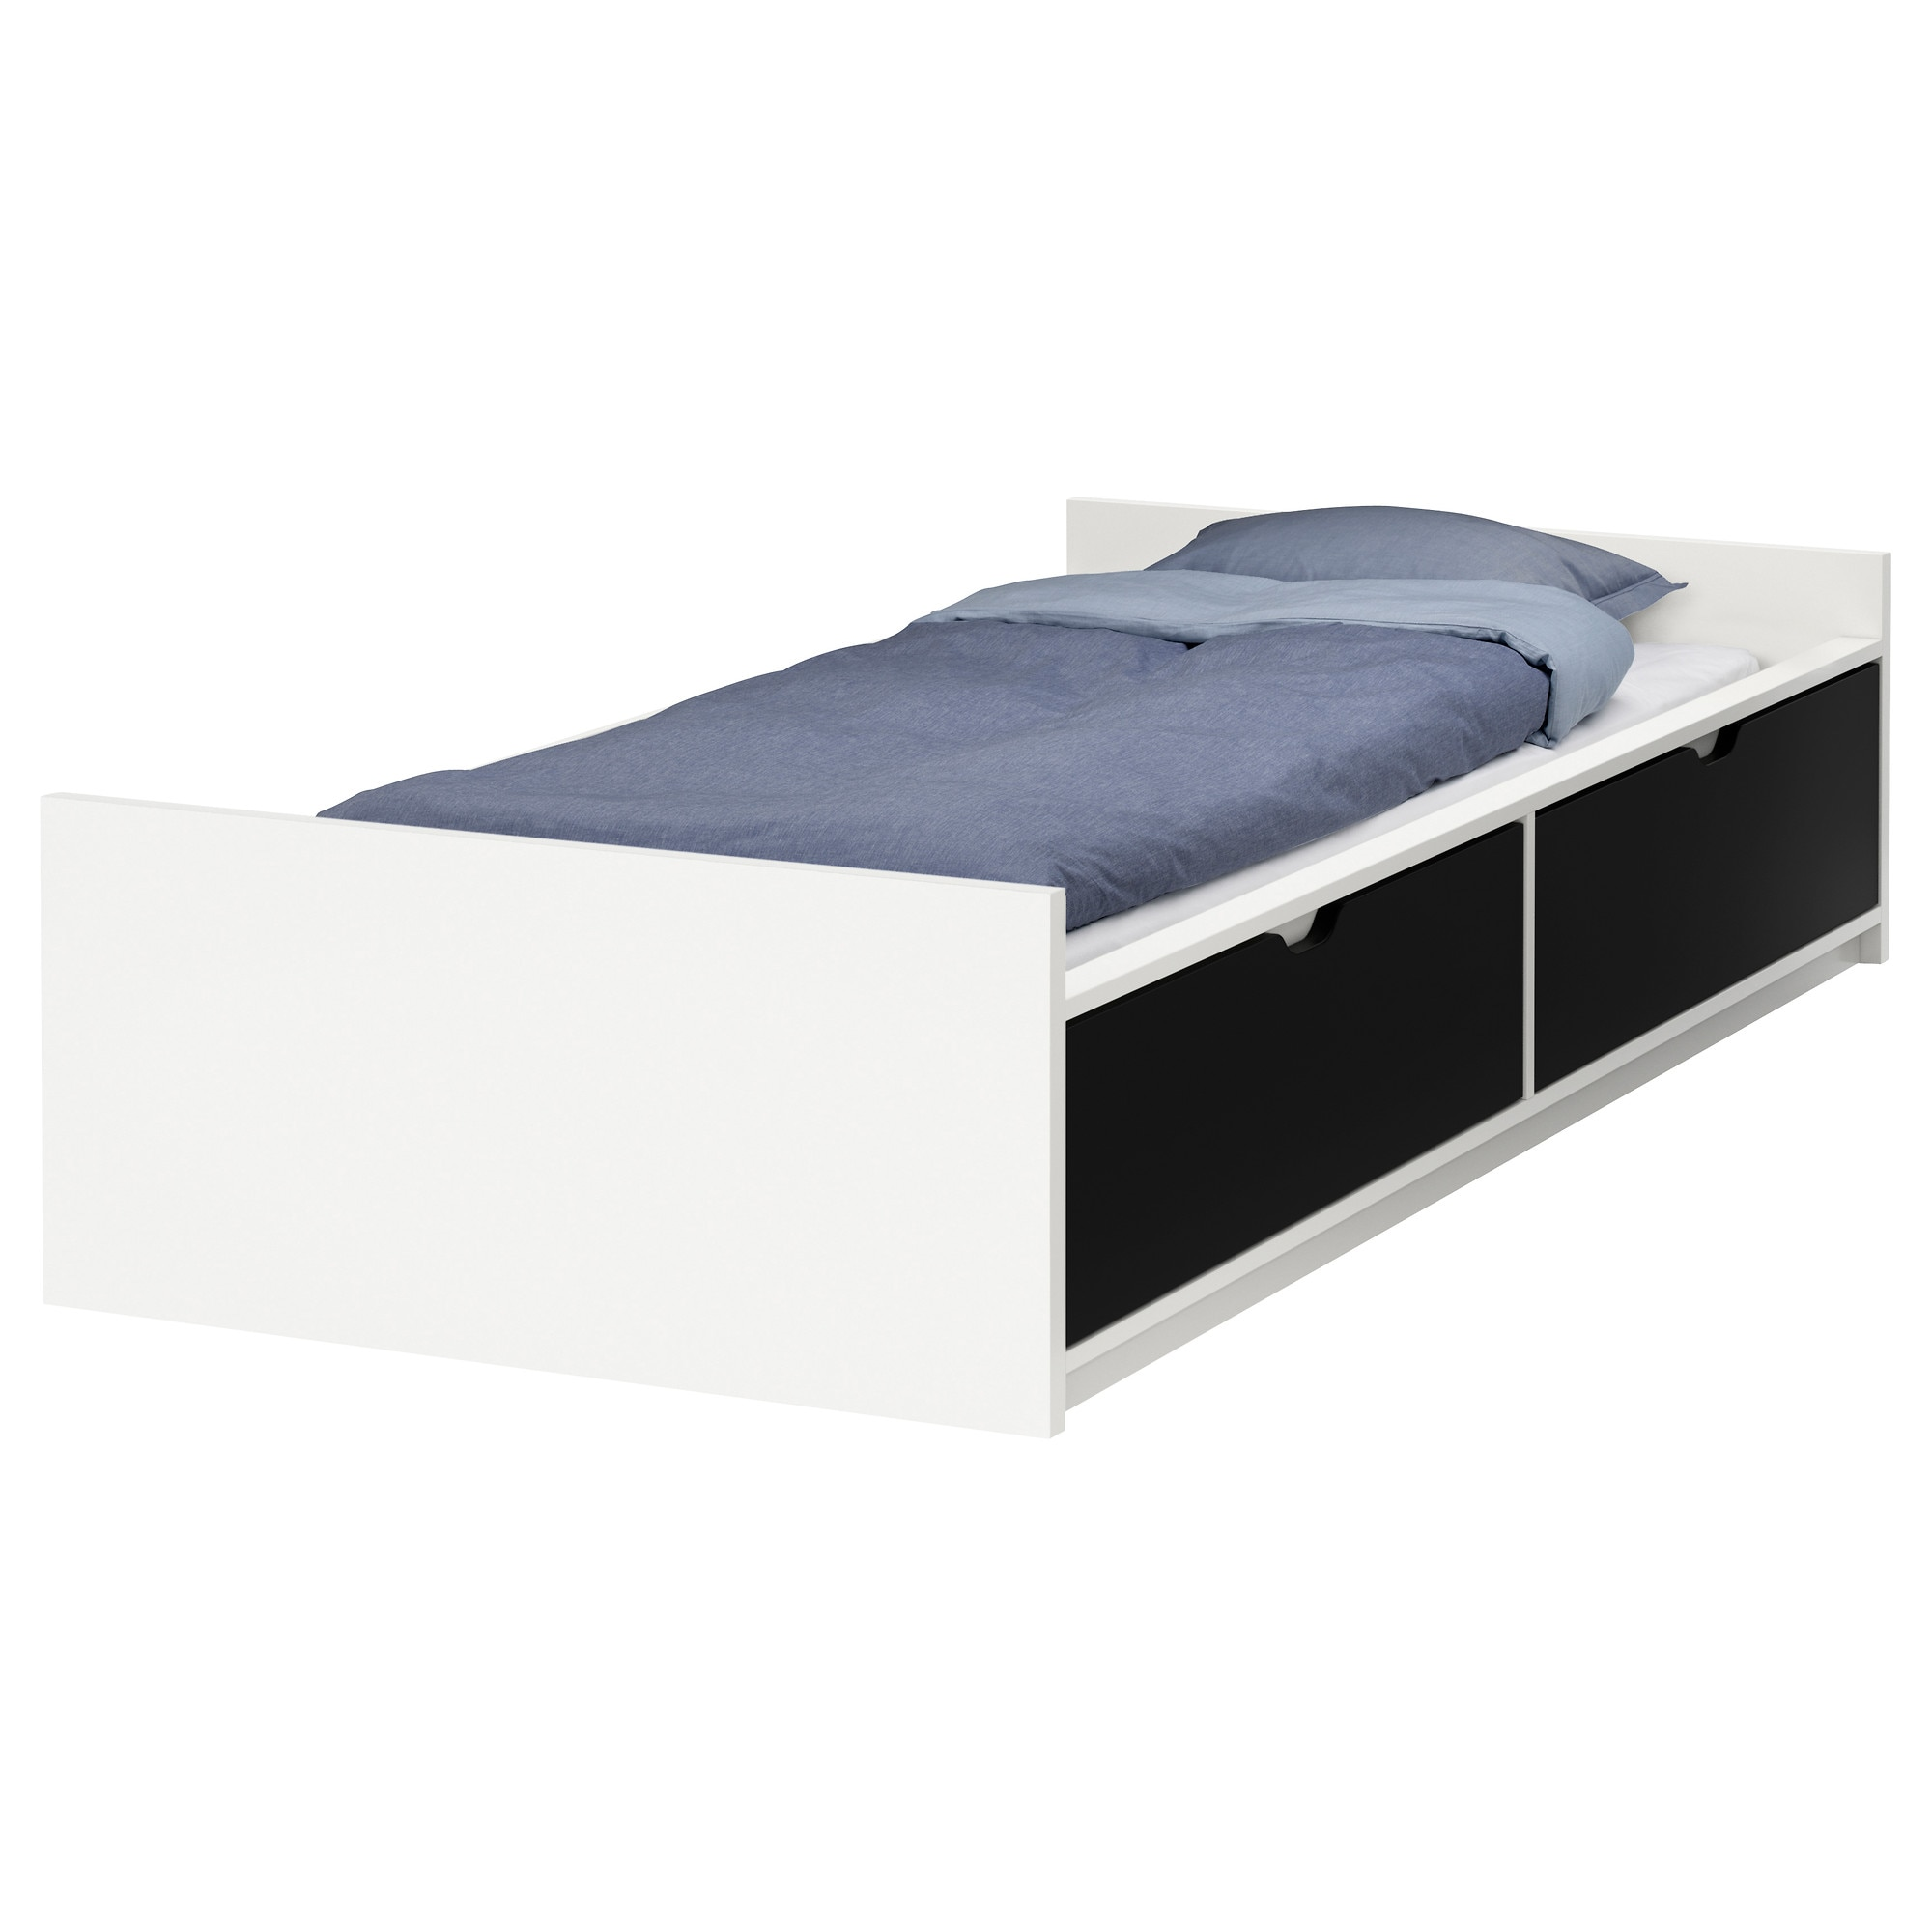 flaxa bed frame wstorageslatted bedbase white length 77 12